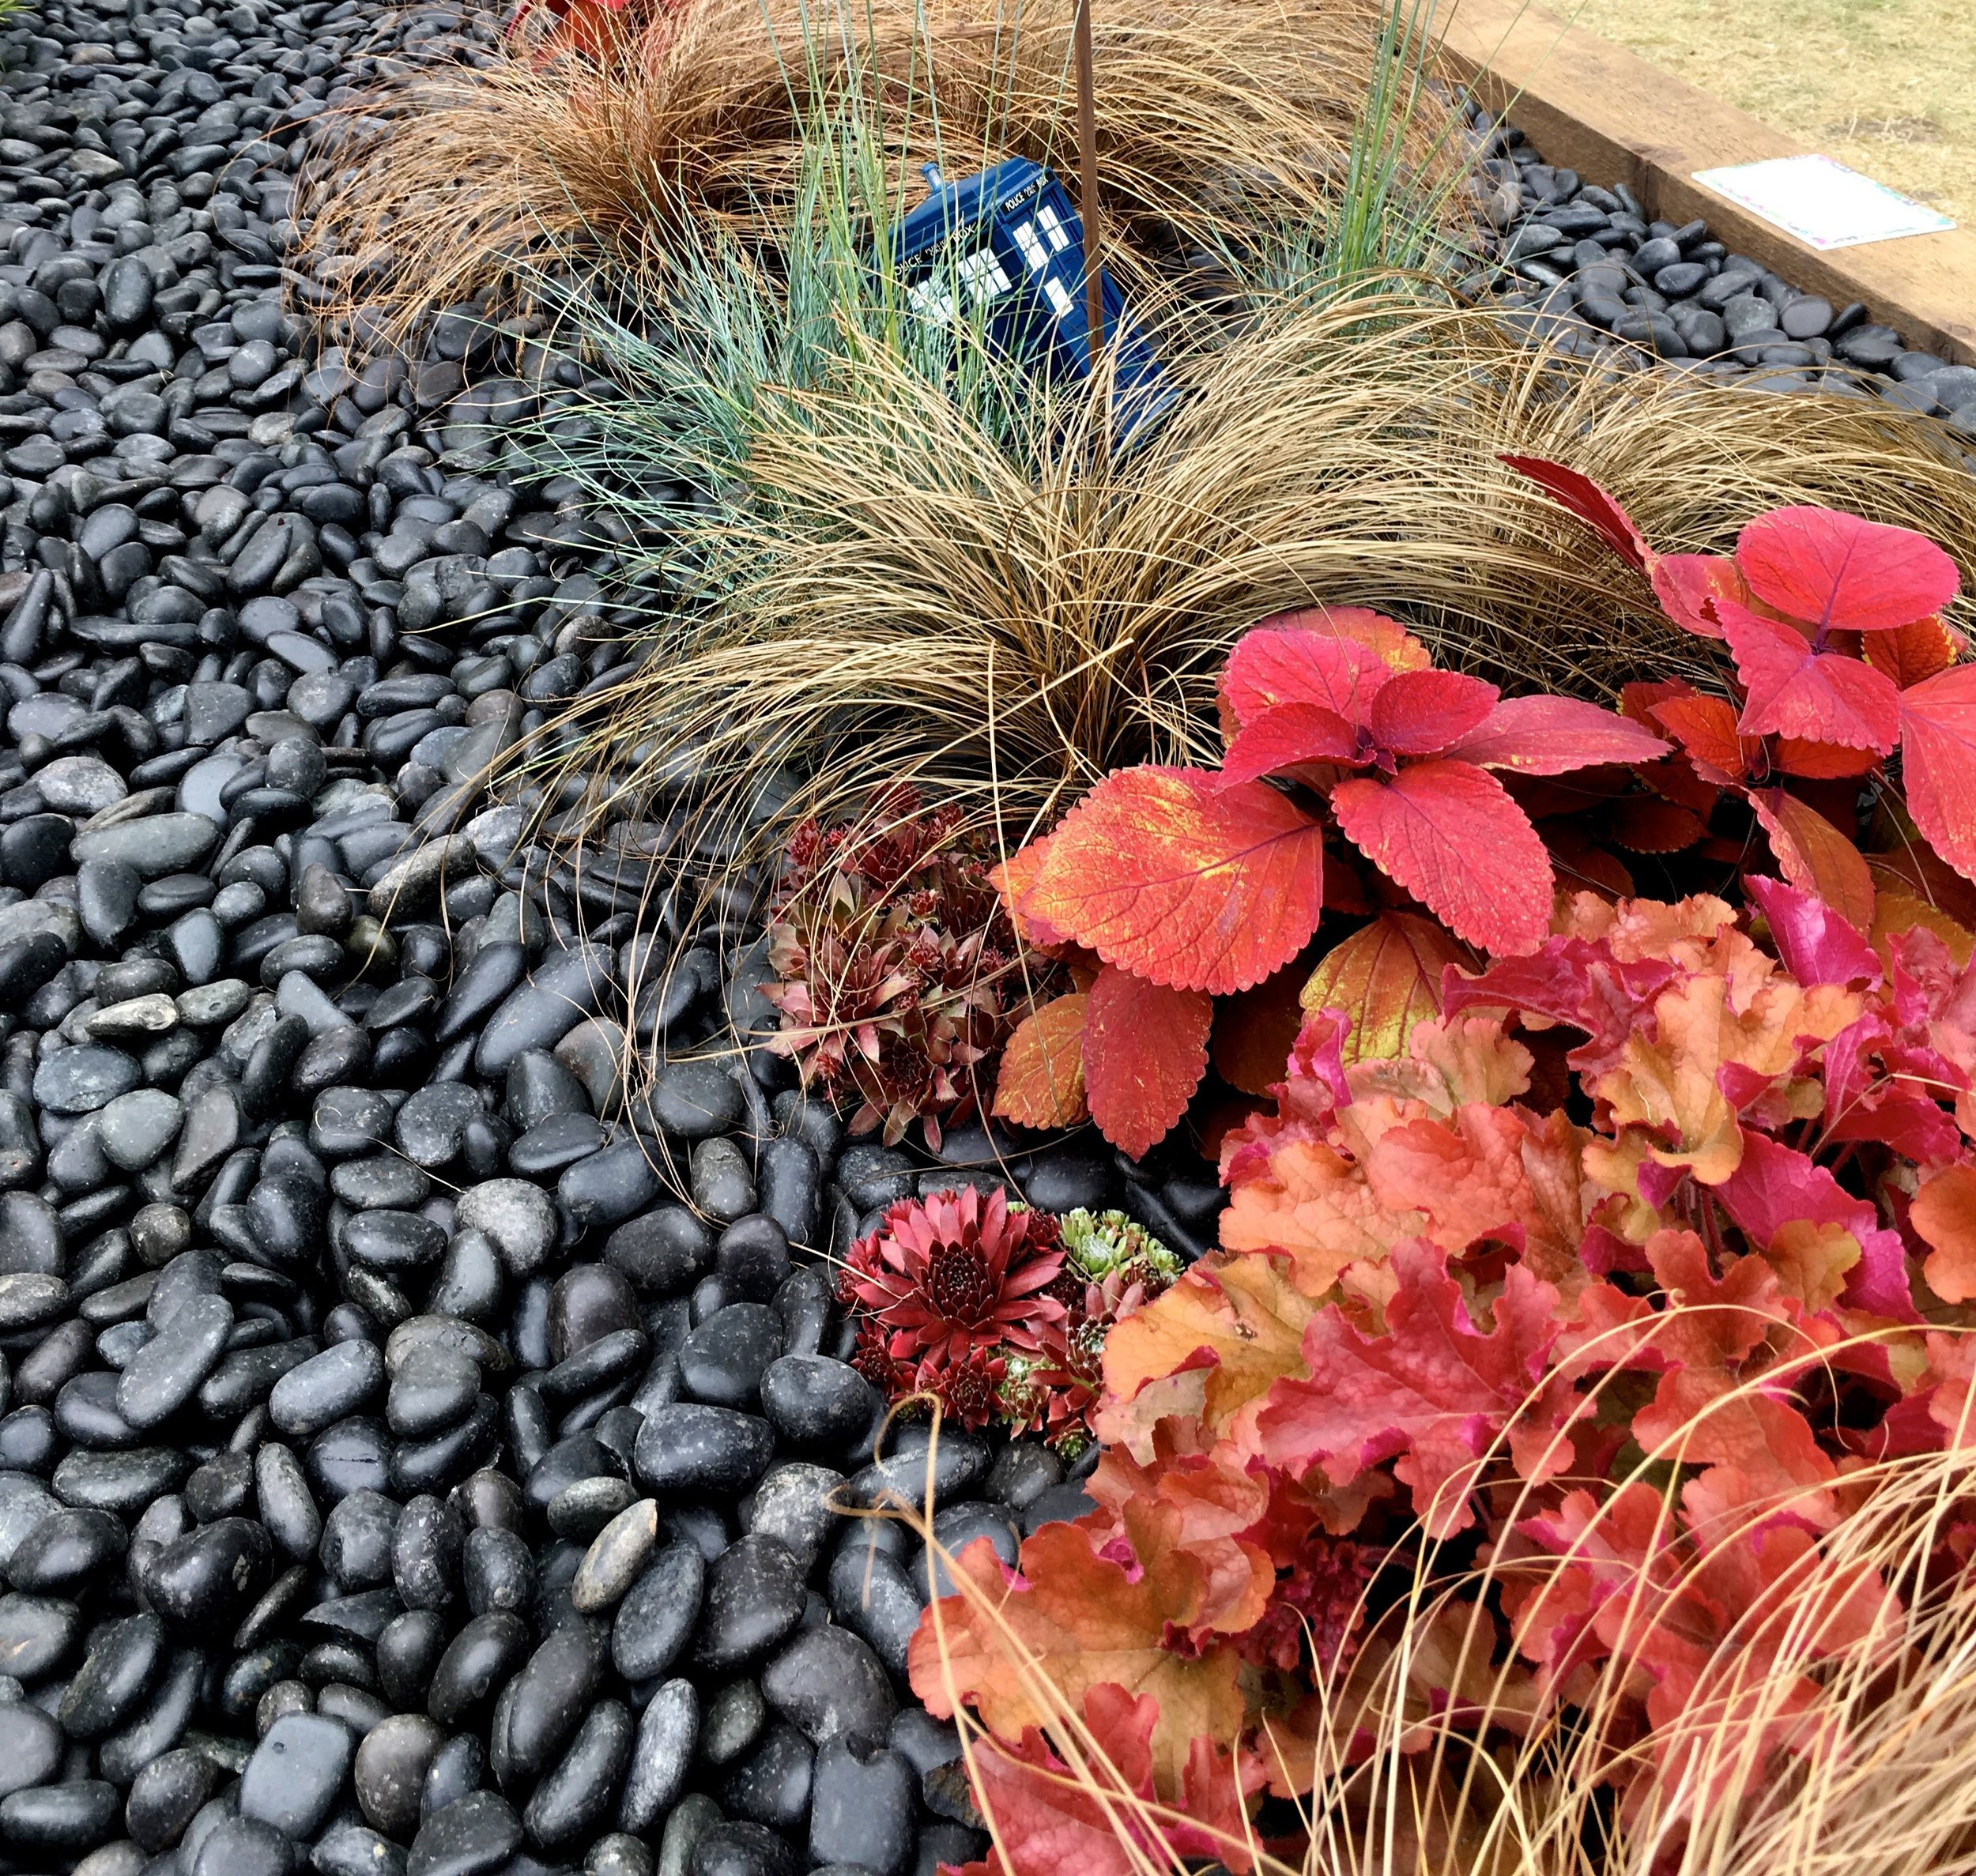 red and burgundy plants against the pebbles